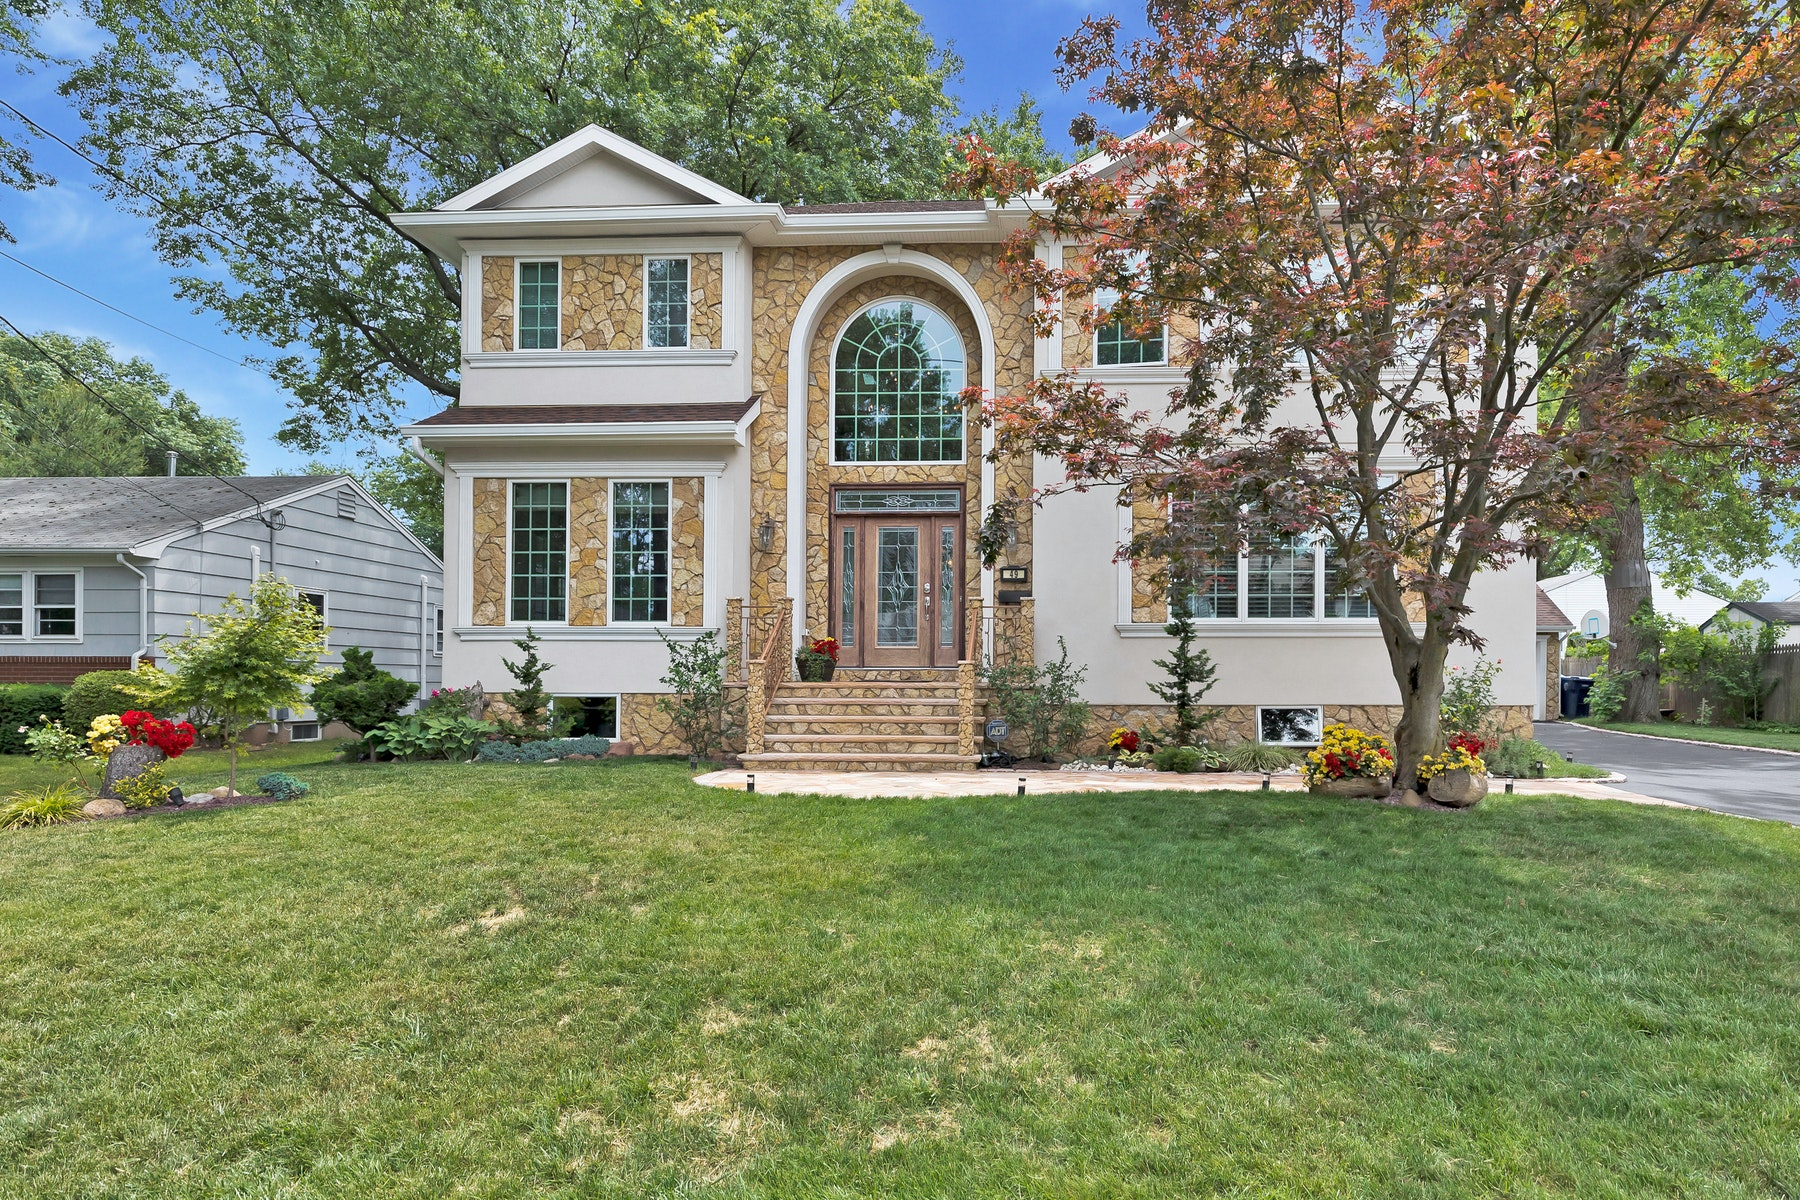 Single Family Homes for Active at Custom Colonial 49 Nassau St Clark, New Jersey 07066 United States